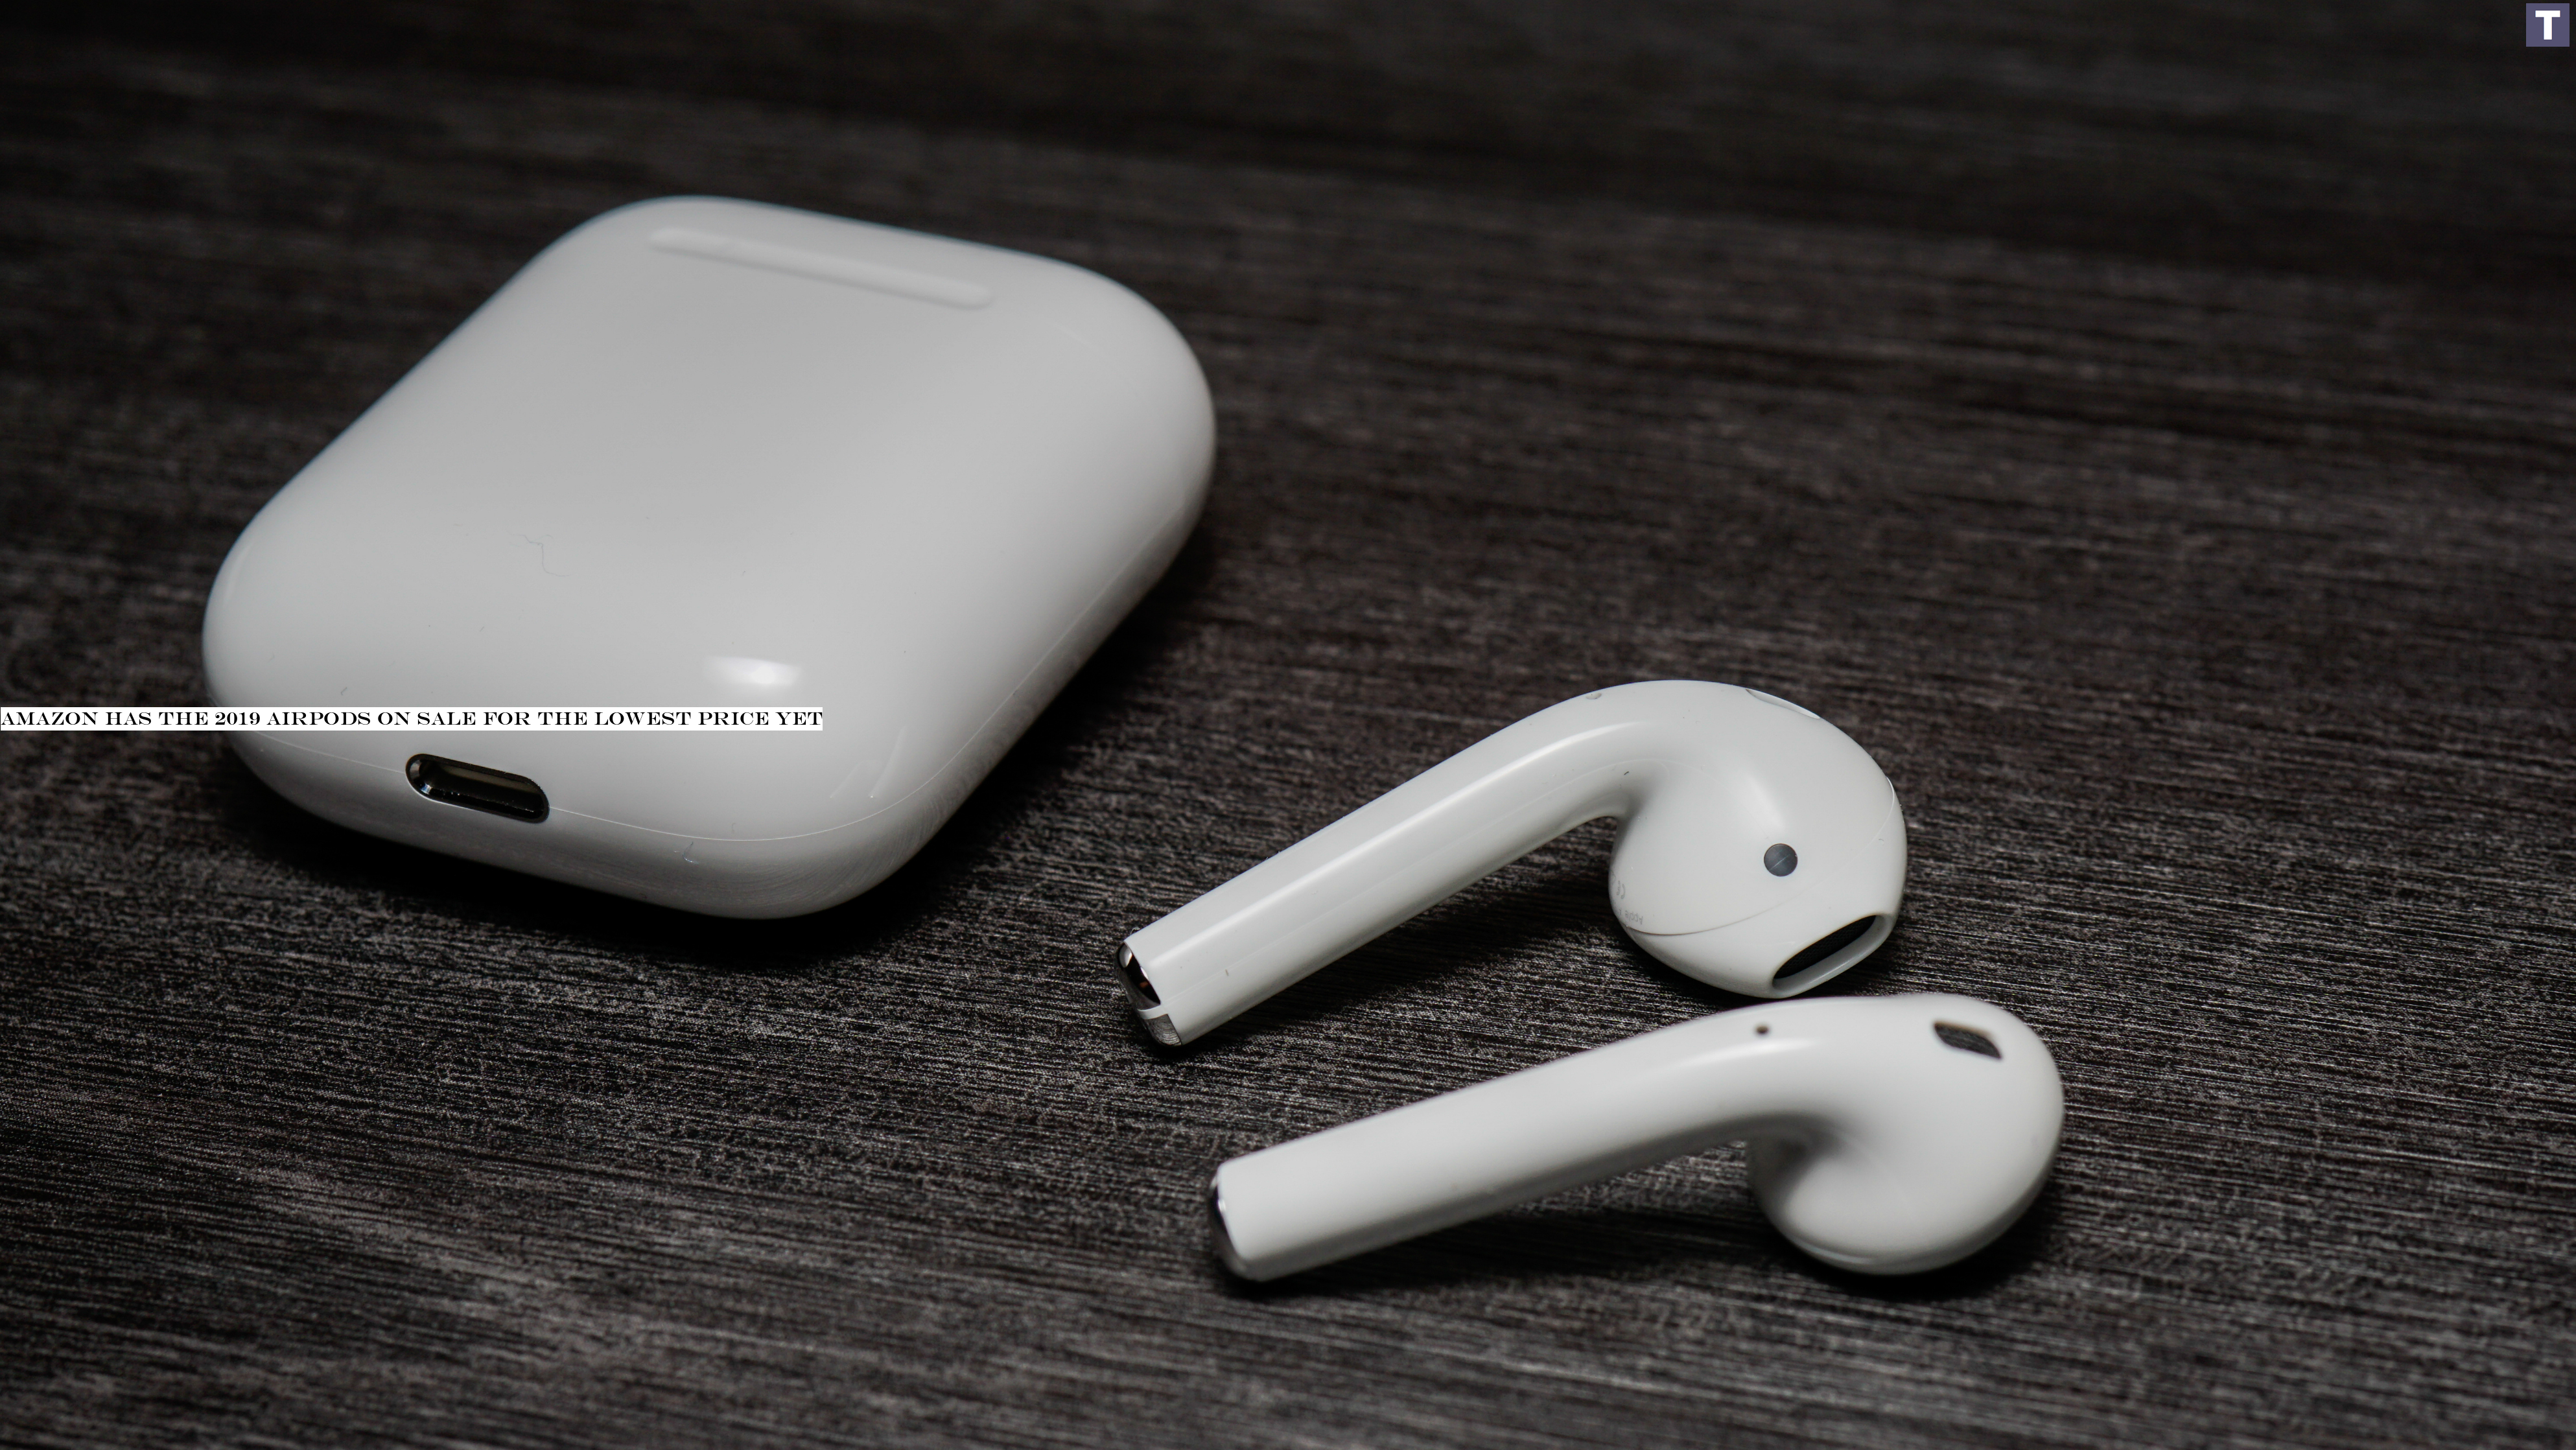 Amazon has the 2019 AirPods on sale for the lowest price yet